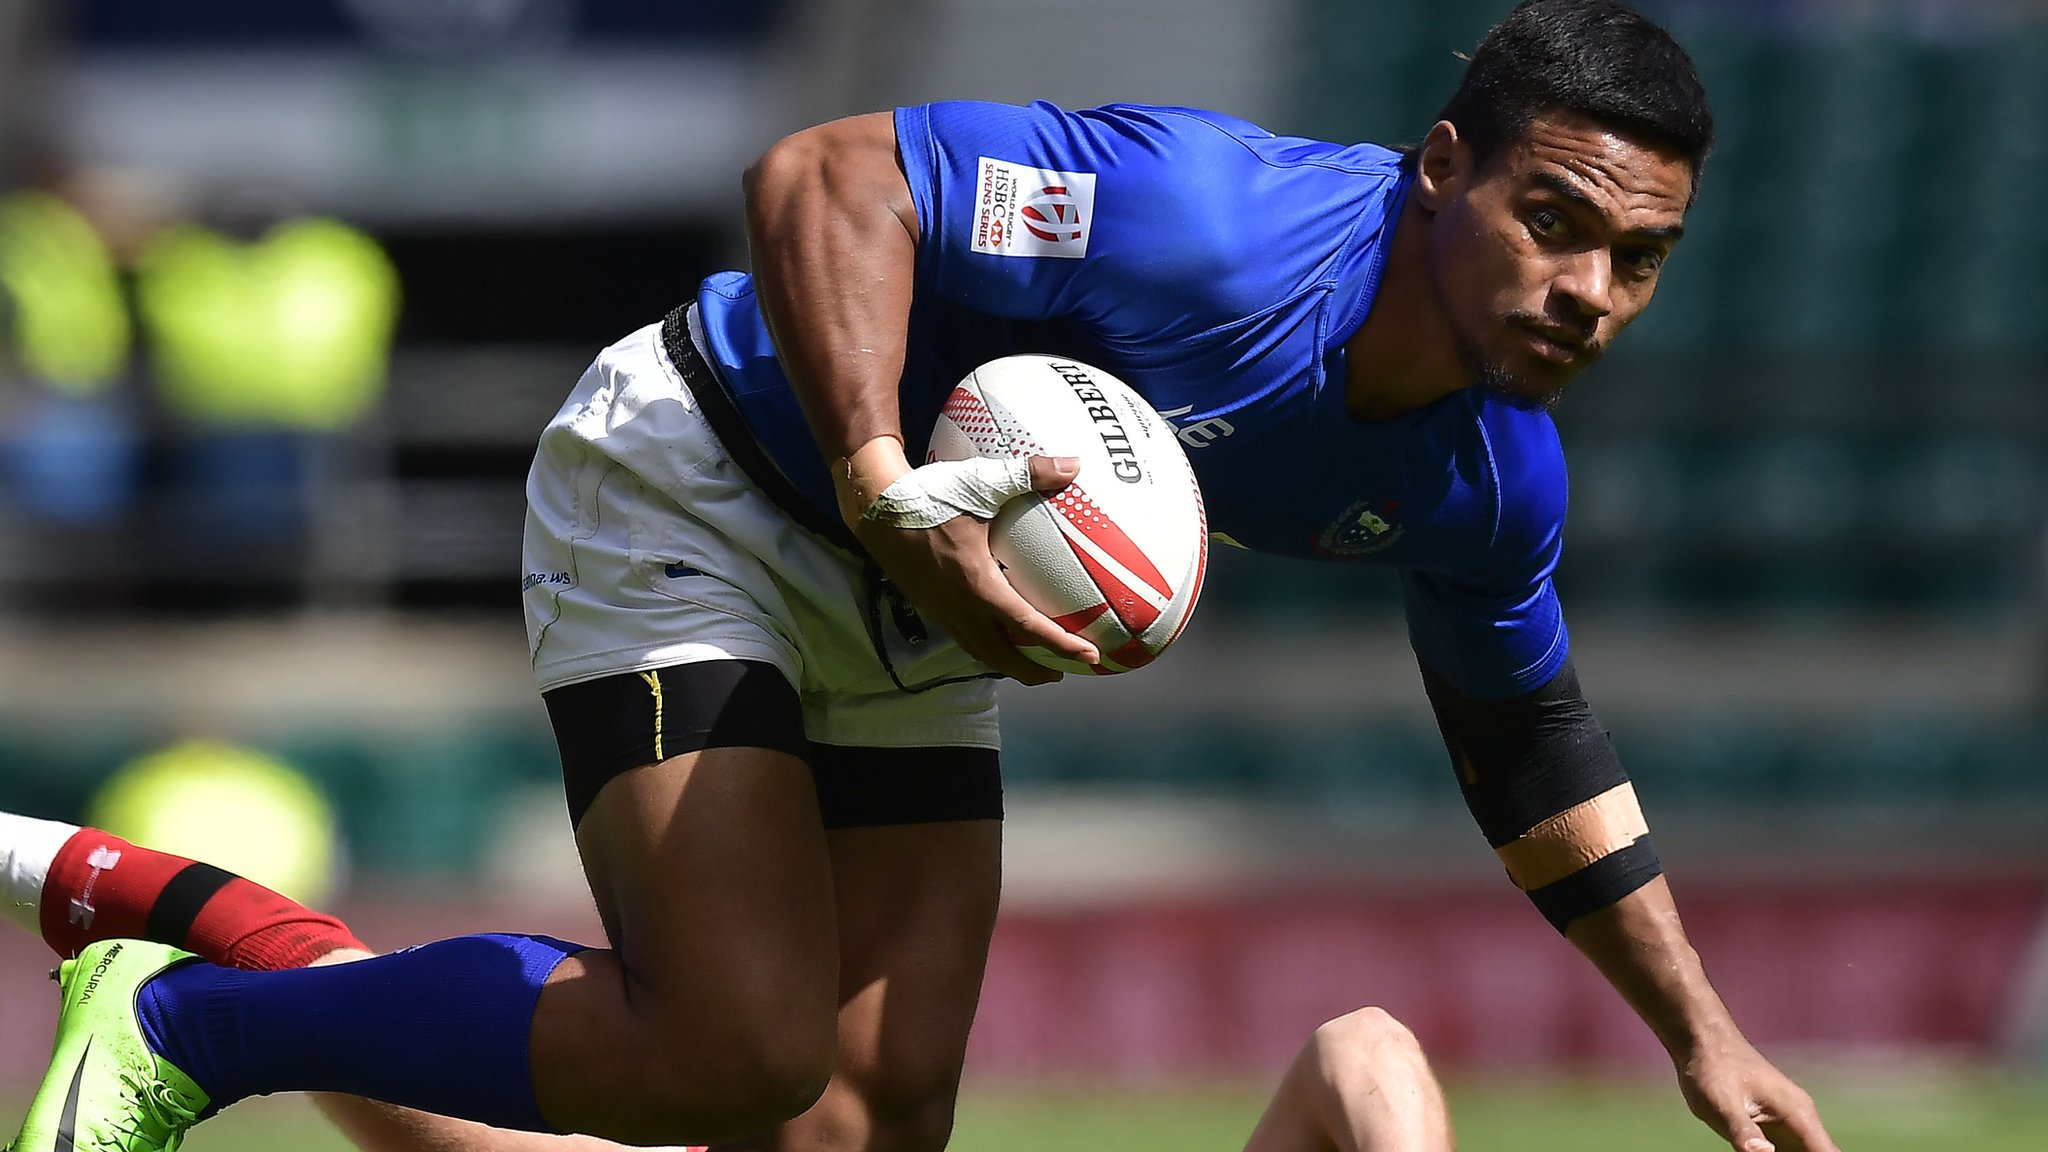 Samoan player pleads guilty to assault that left Wales Williams with broken cheekbone